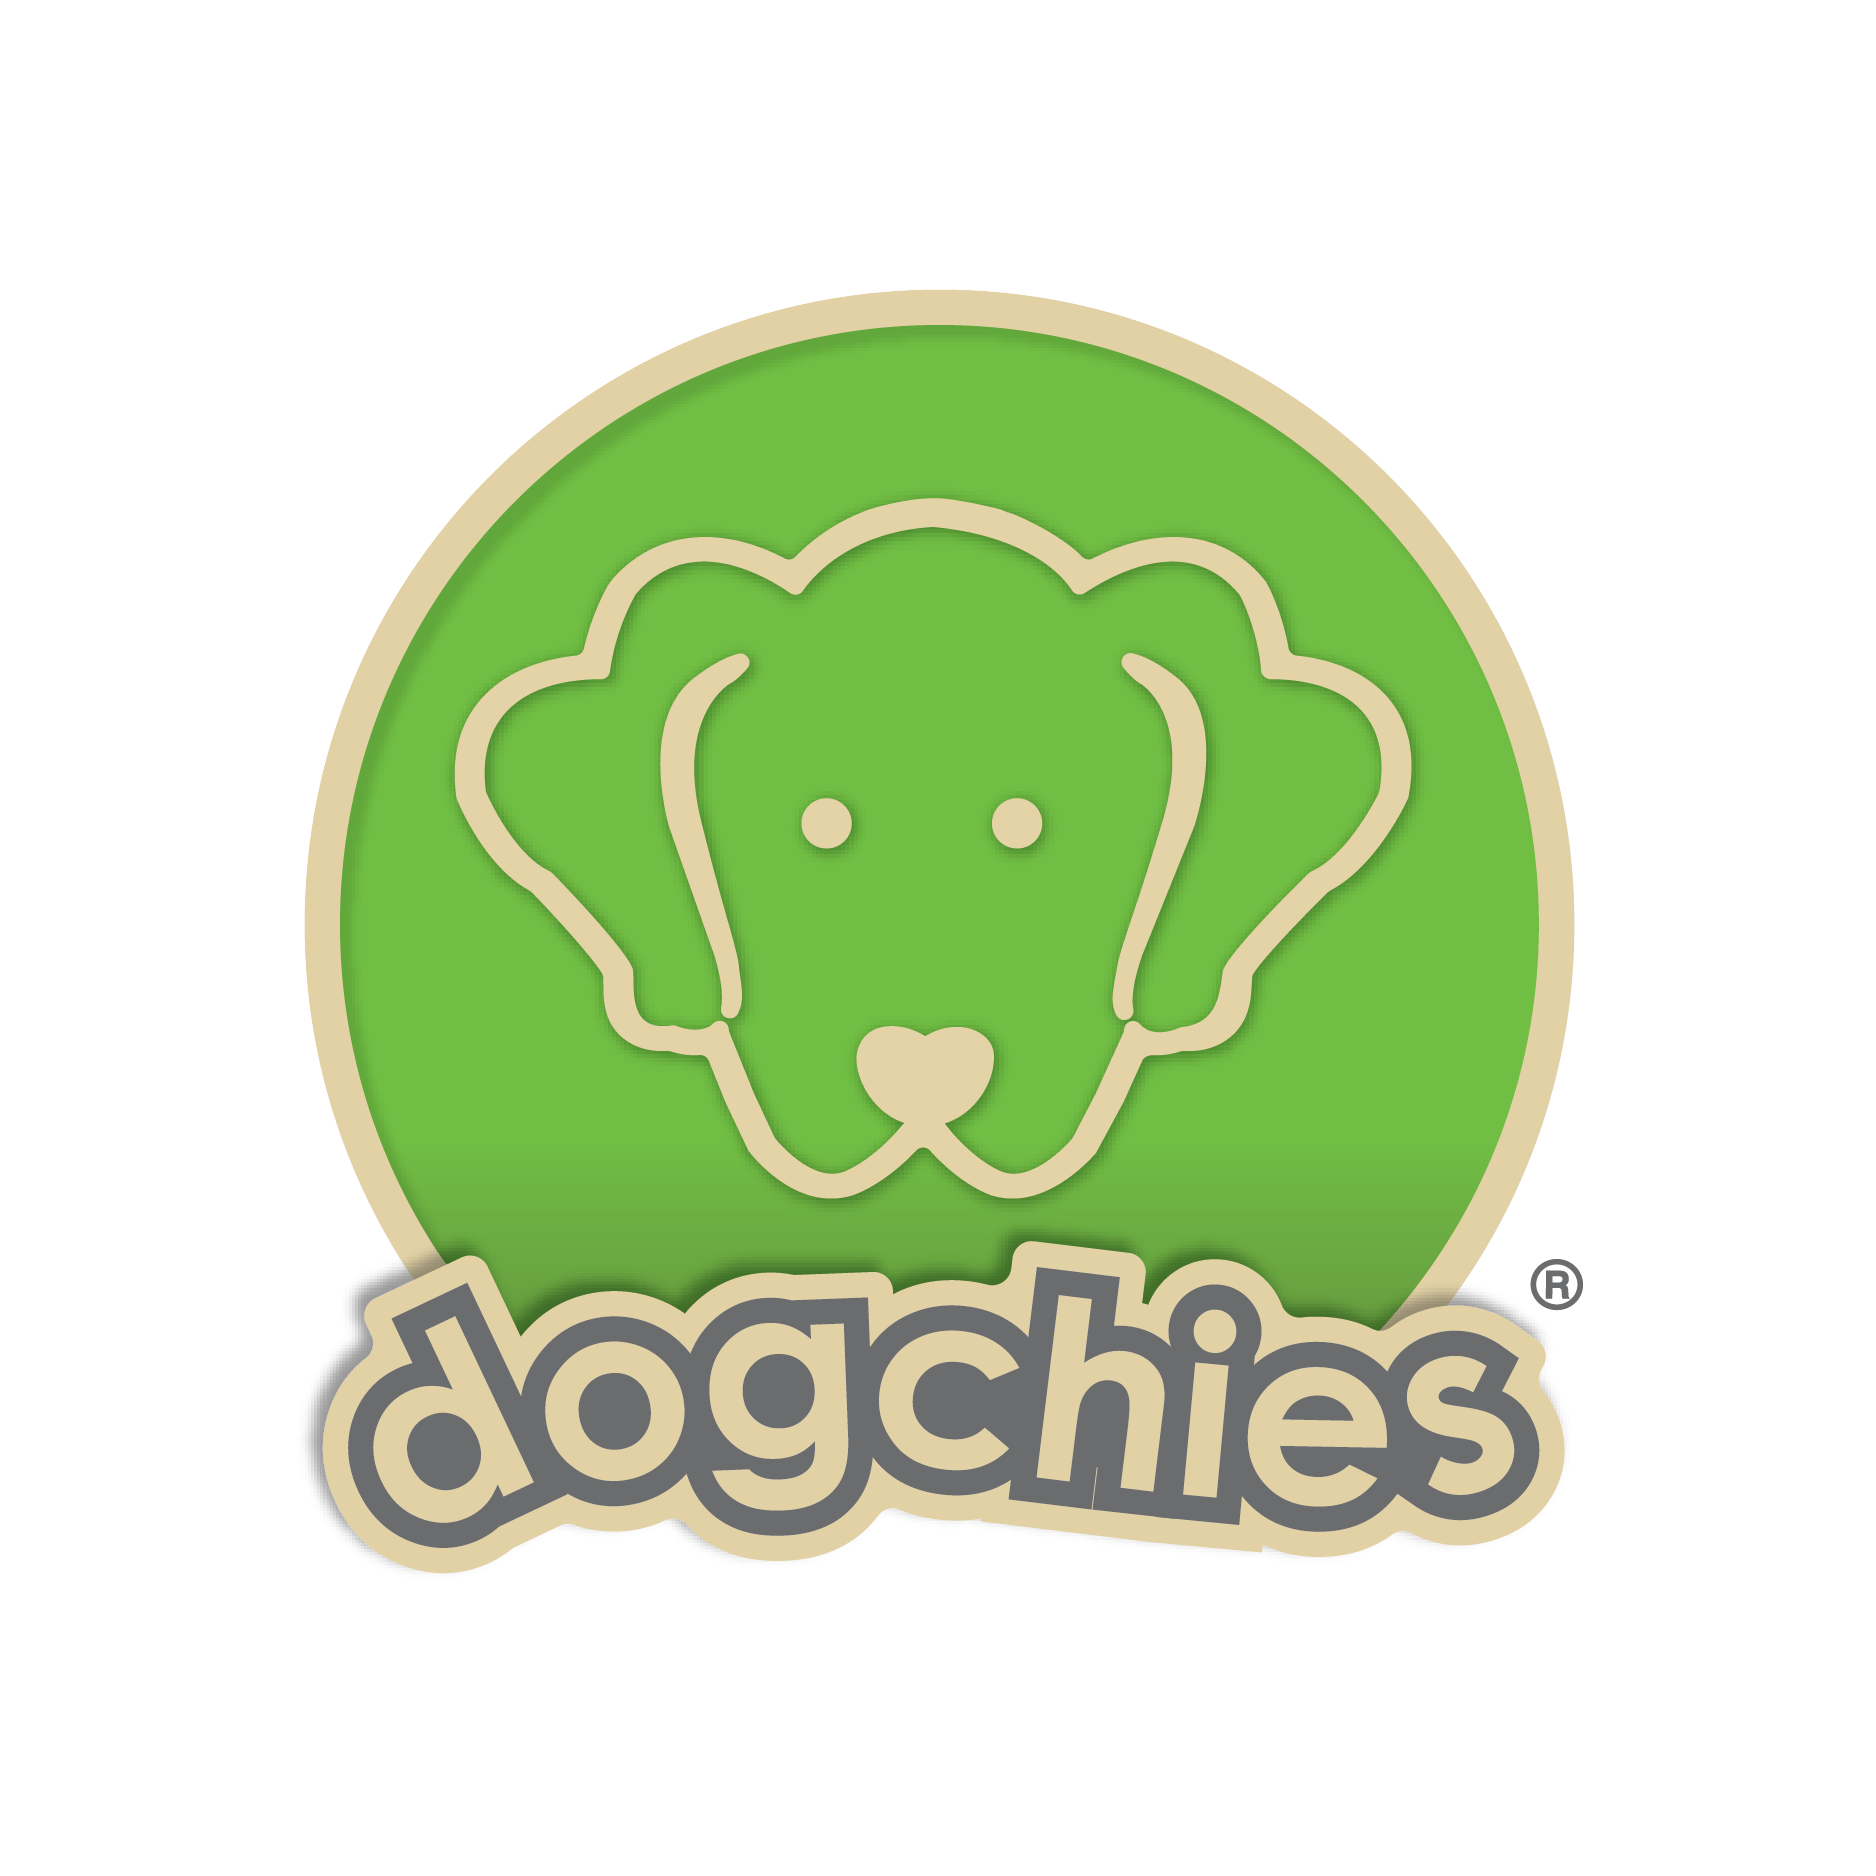 dogchies logo.png